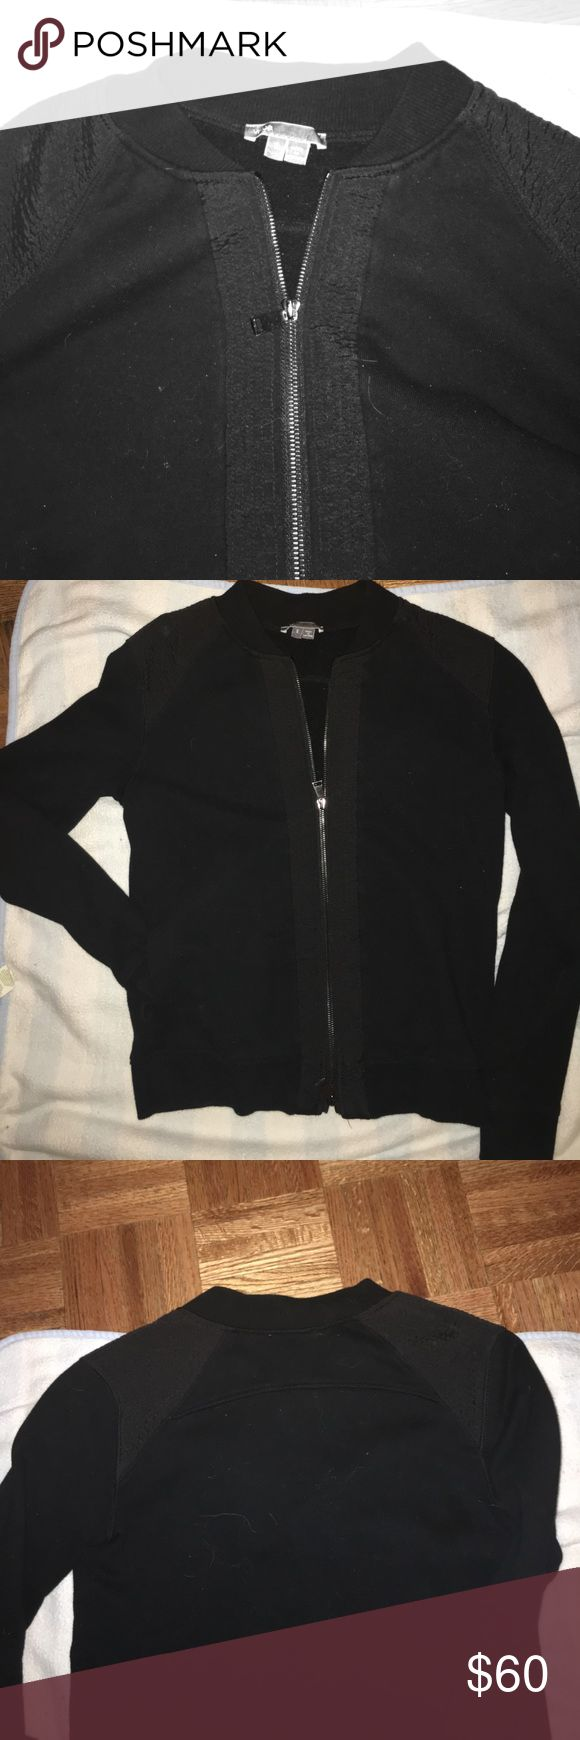 Must have Vince Sprint Top!! Cardigan zip-up This is a spring mist have!  Wonderful quality designer Venice stop up tip with no good.  The luxury item has bronze hardware with s bottom and lower zipper for multiple ways to wear. Around front zipper is the Sam eshade of black detailed pattern and it's also minimally placed on one shoulder and strategically placed on the other for ultimate detailing showing what a luxurious must have this is, also great fall transition!  Wow once. No real…